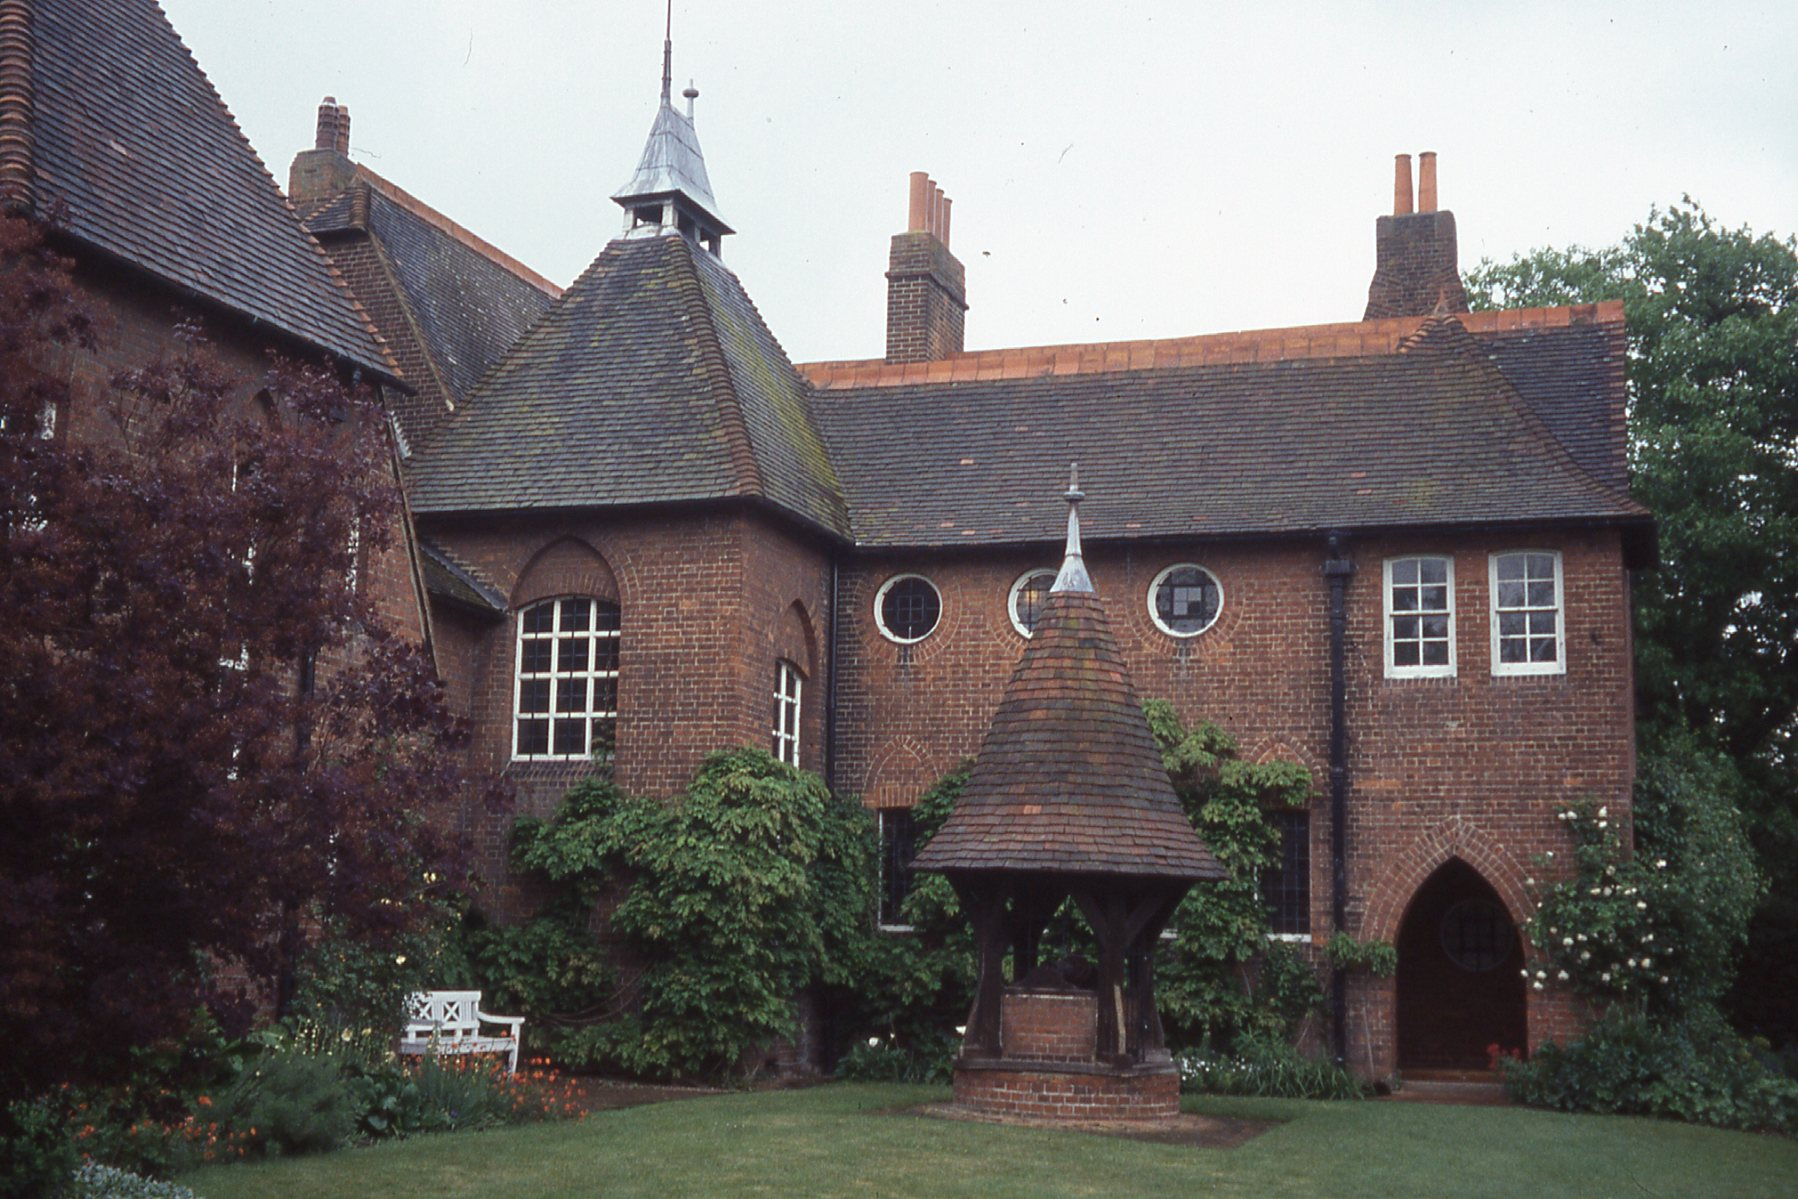 At Red House, William Morris's first home and garden, the showy patterned plantings typical of Victorian gardens are eschewed in favor of ornamental fruit trees and climbing roses.